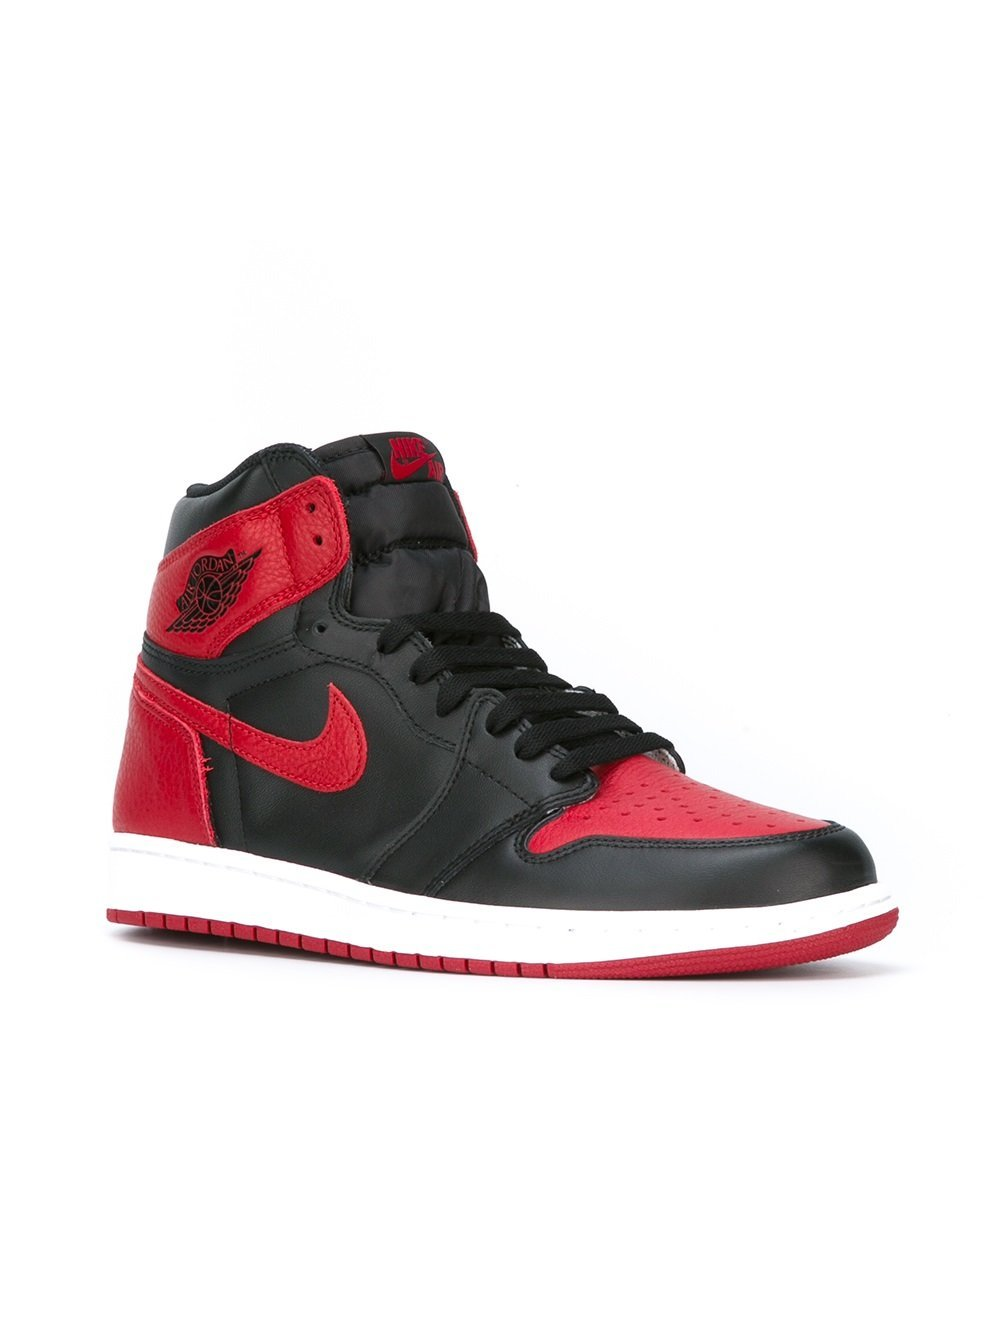 d2def8e16f930f Nike Air Jordan 1 Retro High Og Banned Sneakers